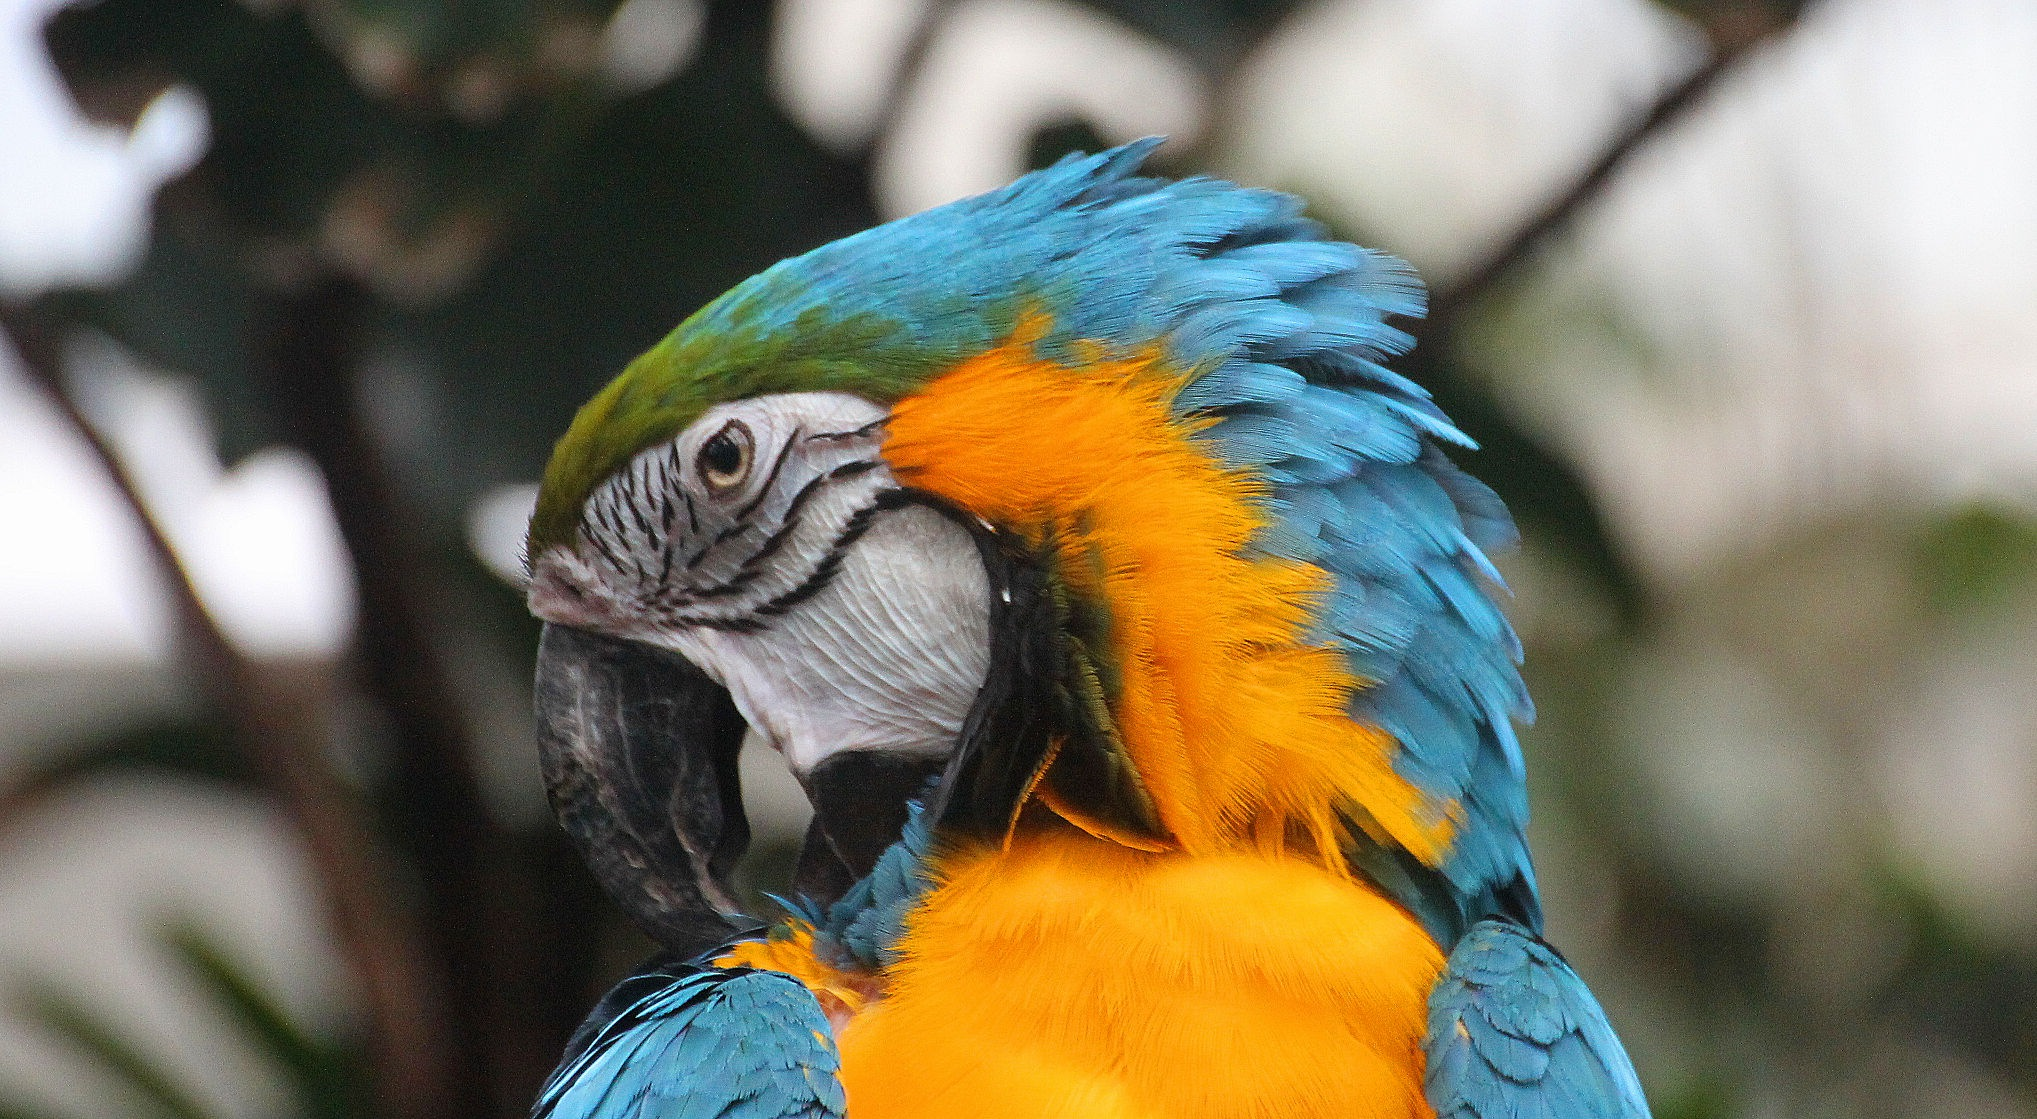 Macaw at the Central Park Zoo by Terry Ballard